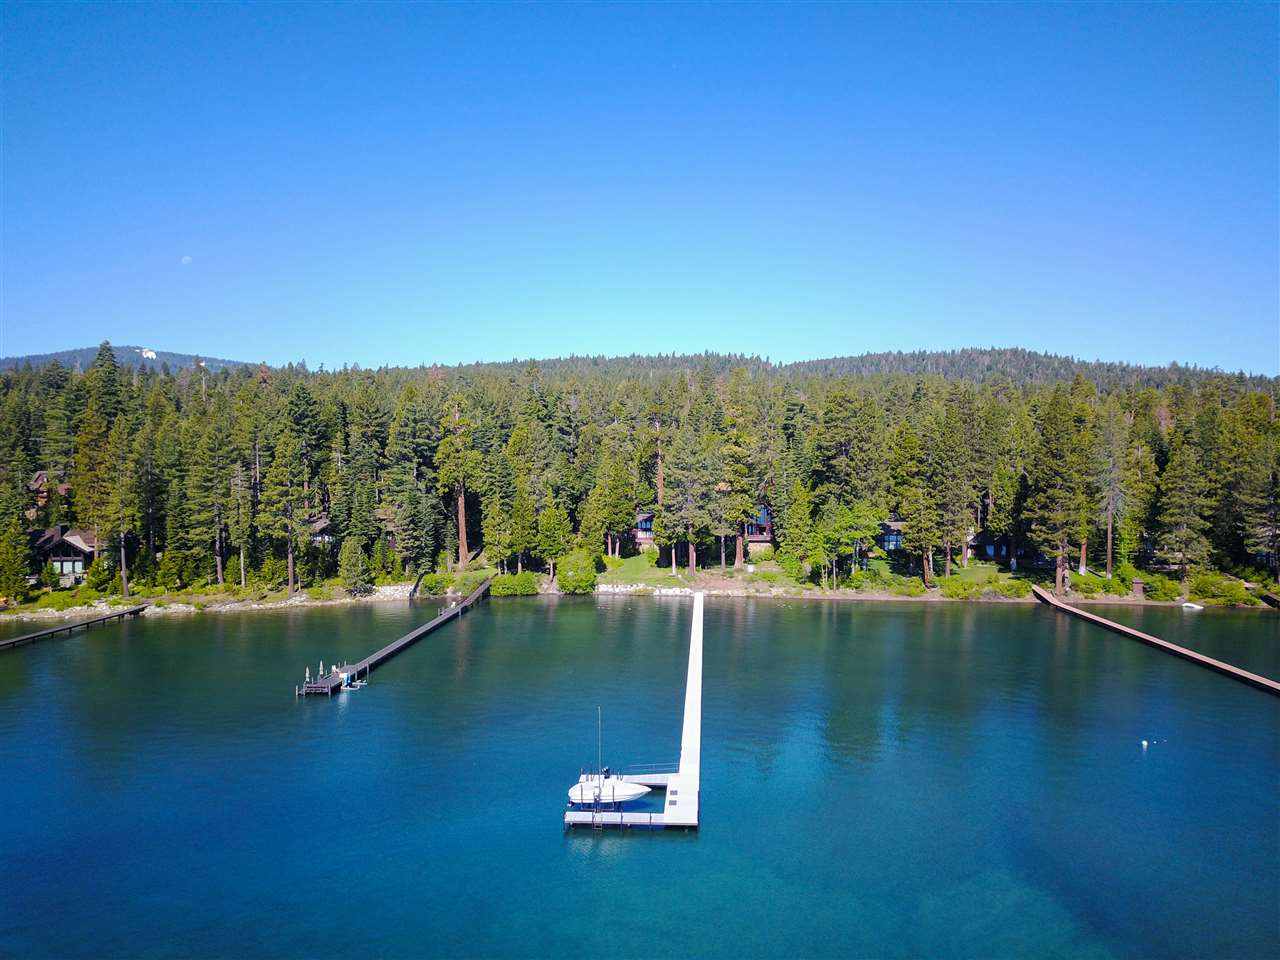 Casa Unifamiliar por un Venta en 850 West Lake Boulevard Tahoe City, California,96145 Estados Unidos